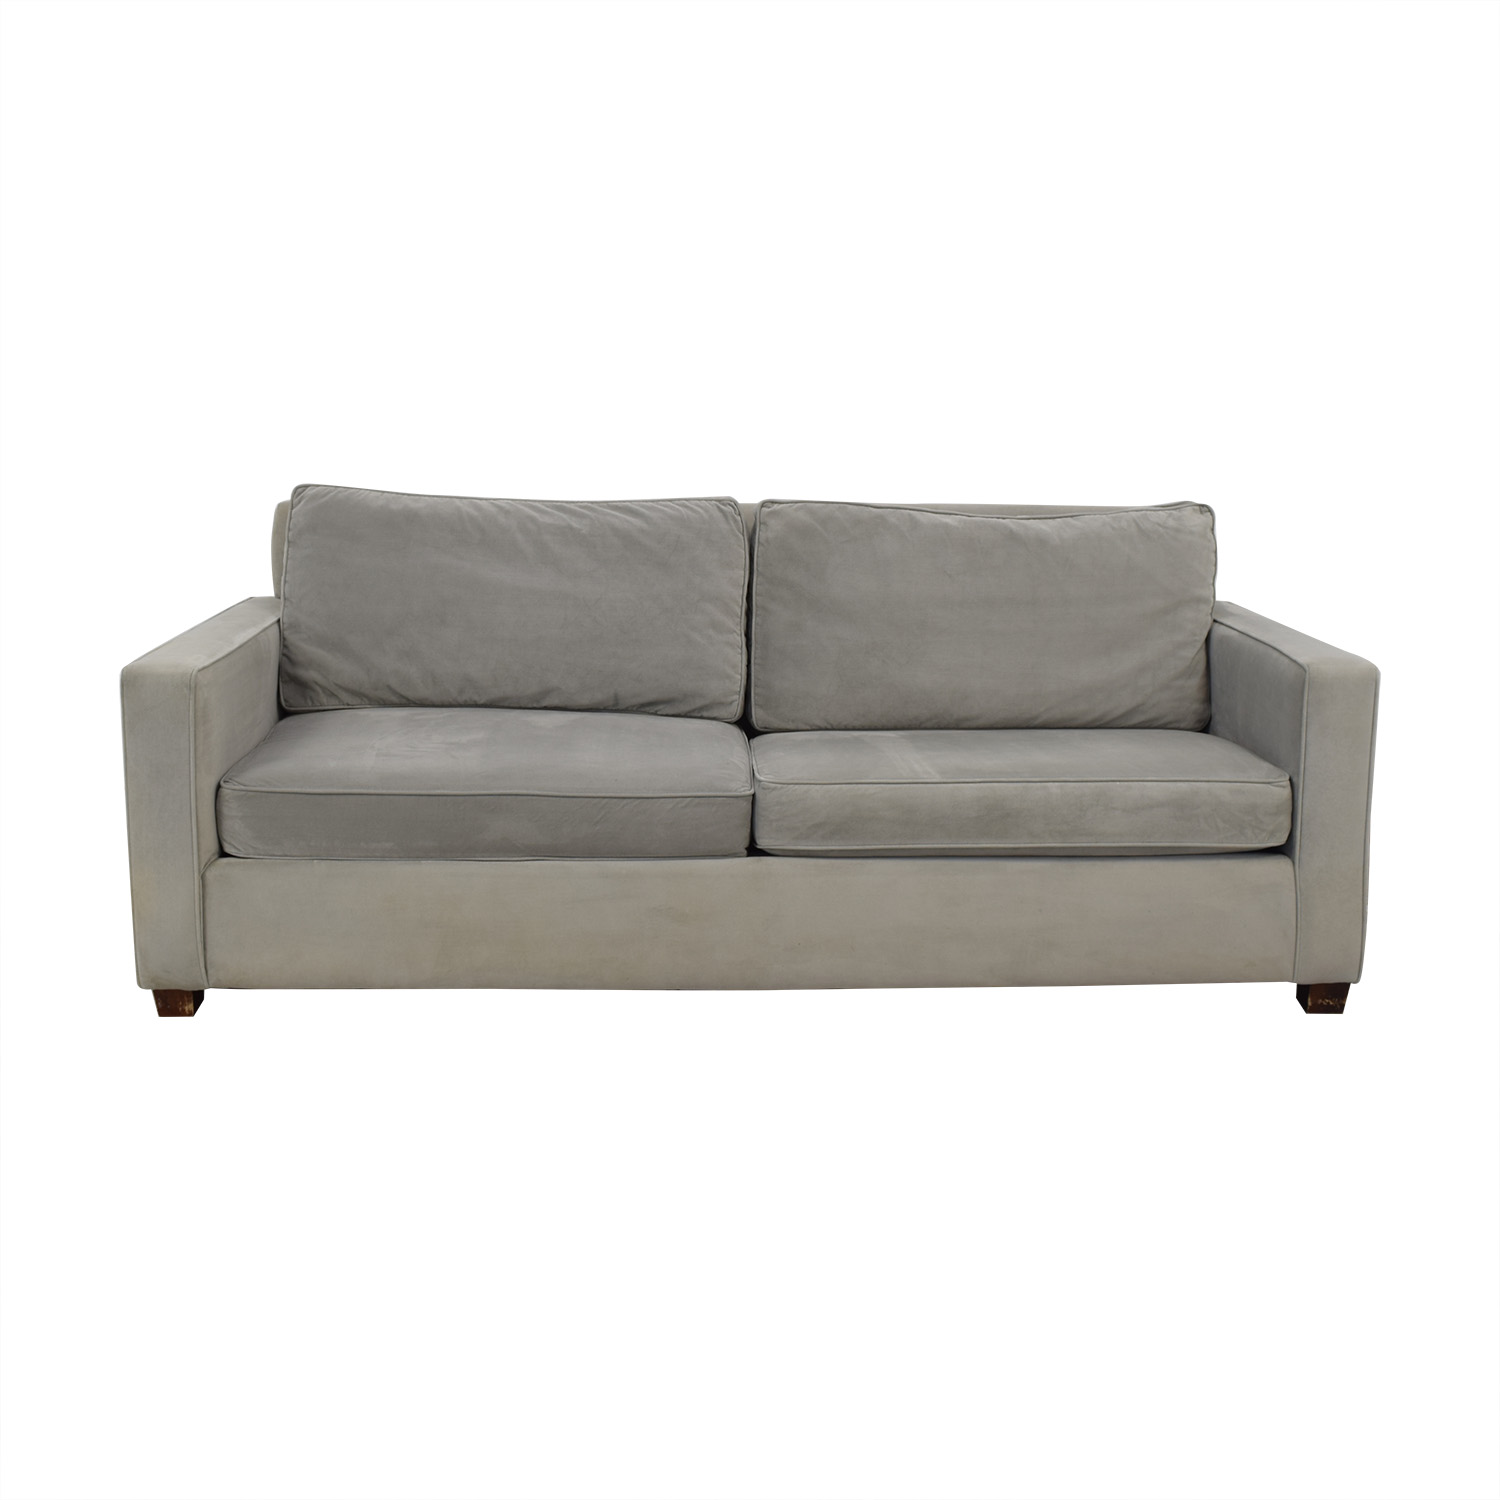 West Elm West Elm Henry Sofa discount